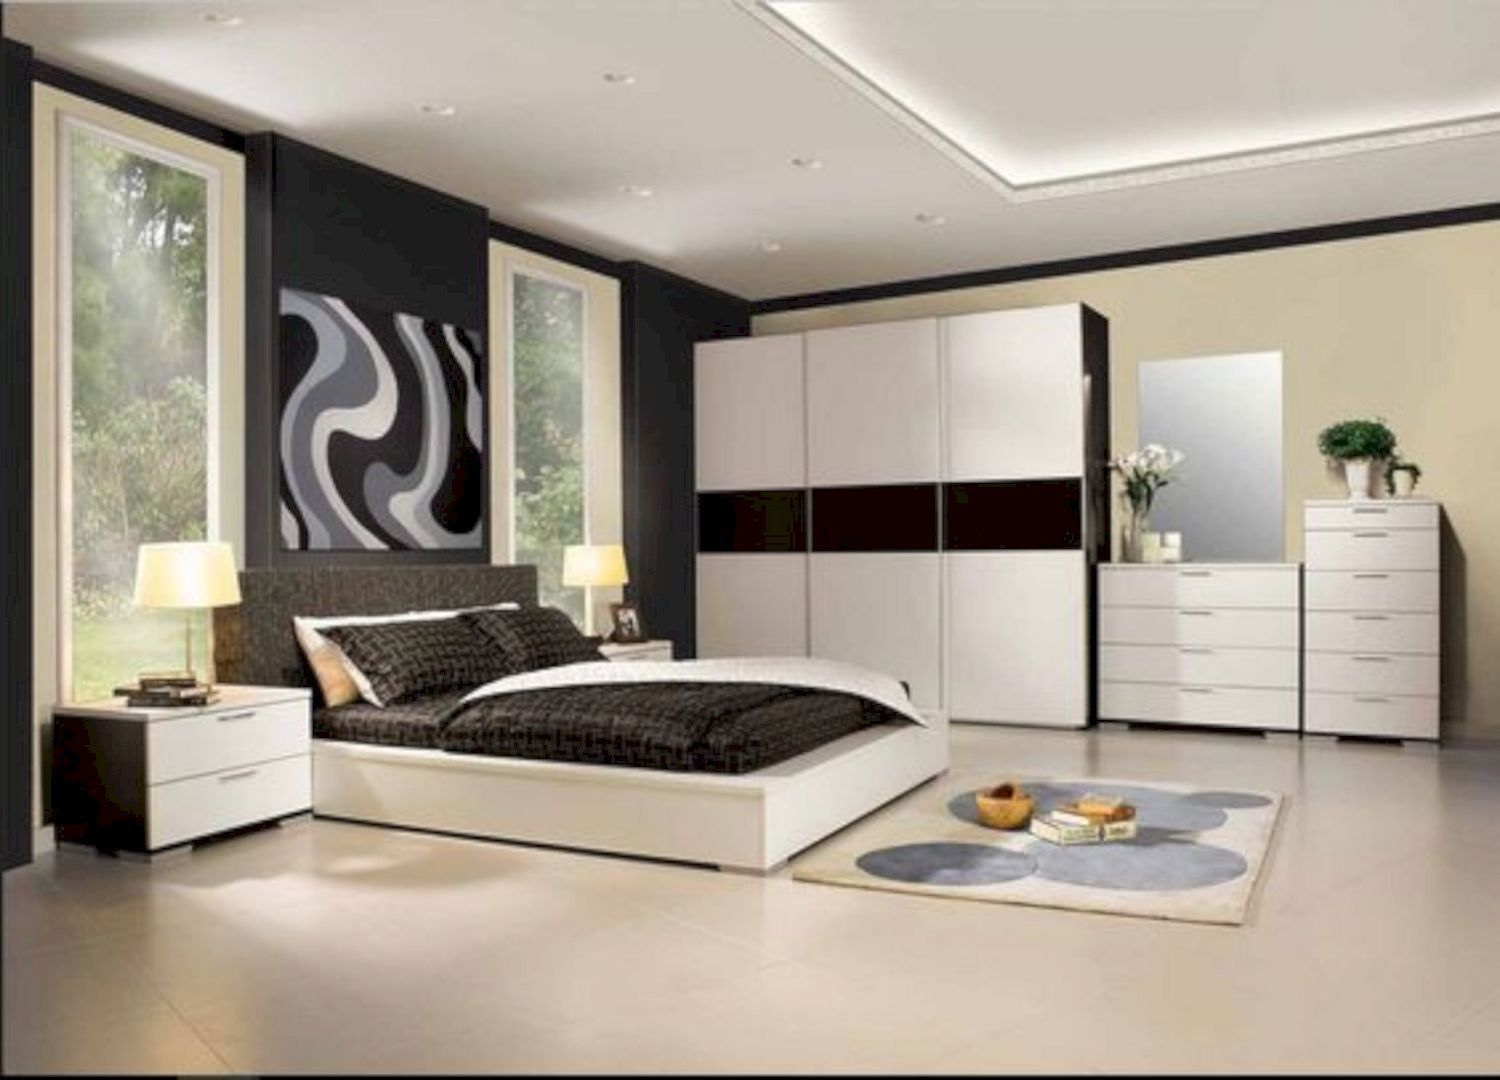 15 Interior Design Ideas To Prettify Your 2 Bhk Flat 13 Interior